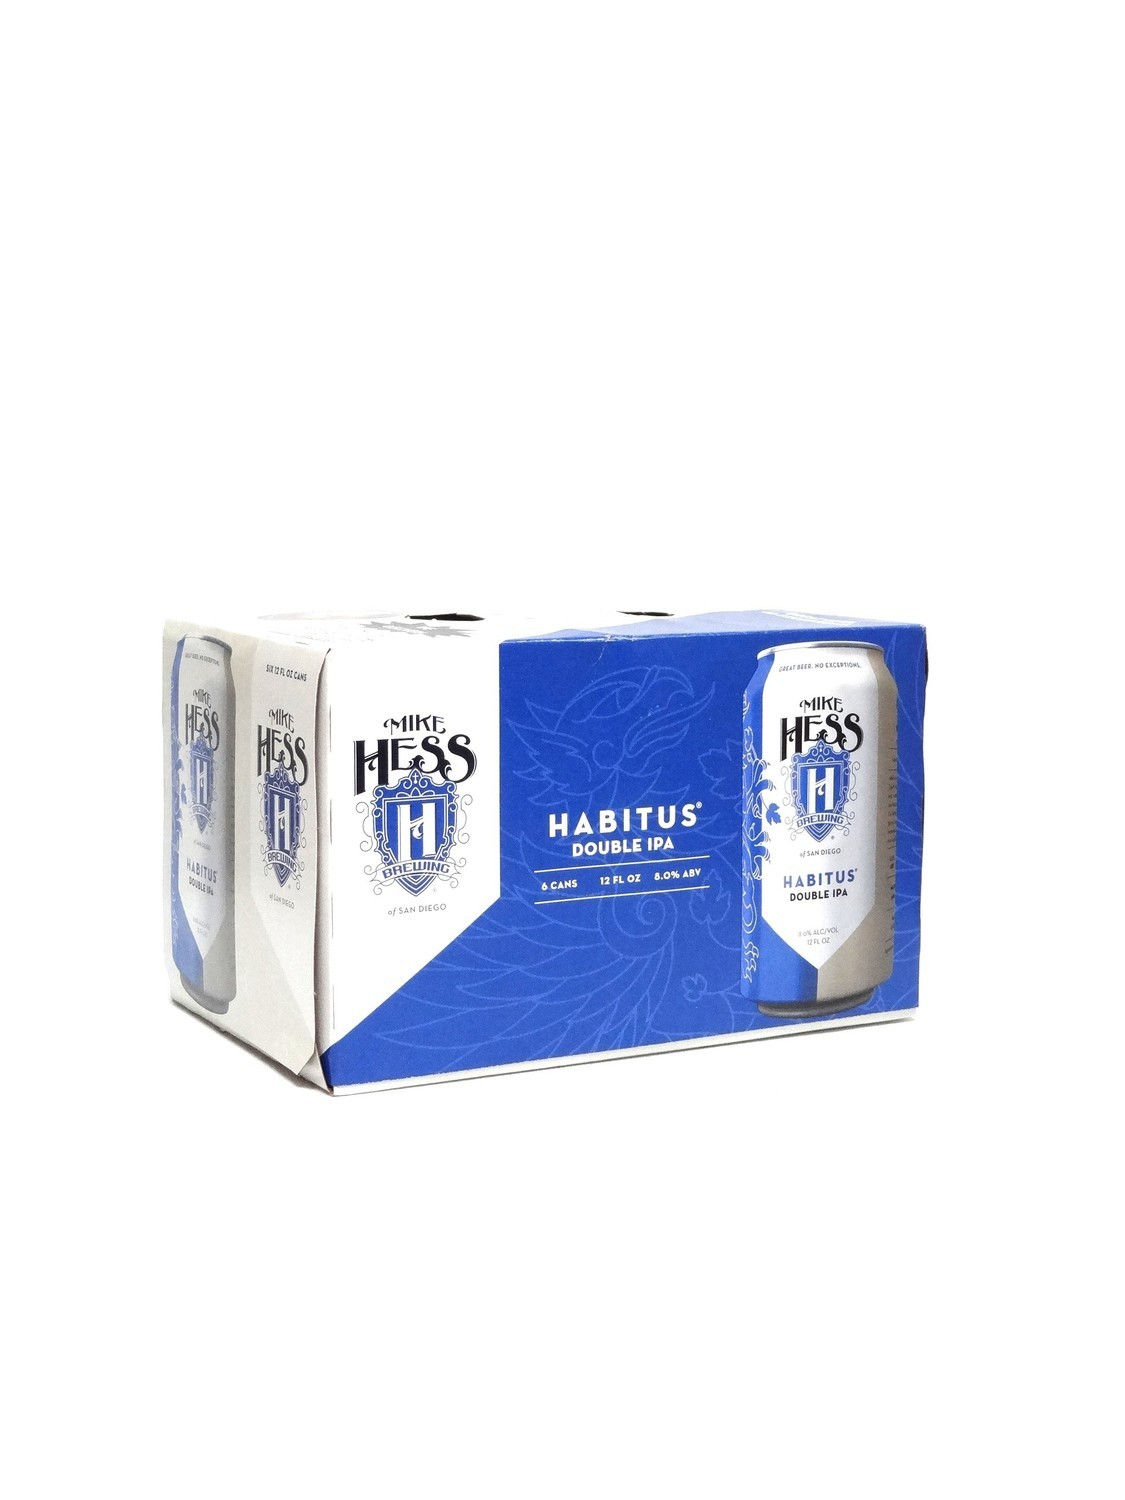 Habitus Double IPA 6pk/12oz By Mike Hess Brewing (F10-1)C